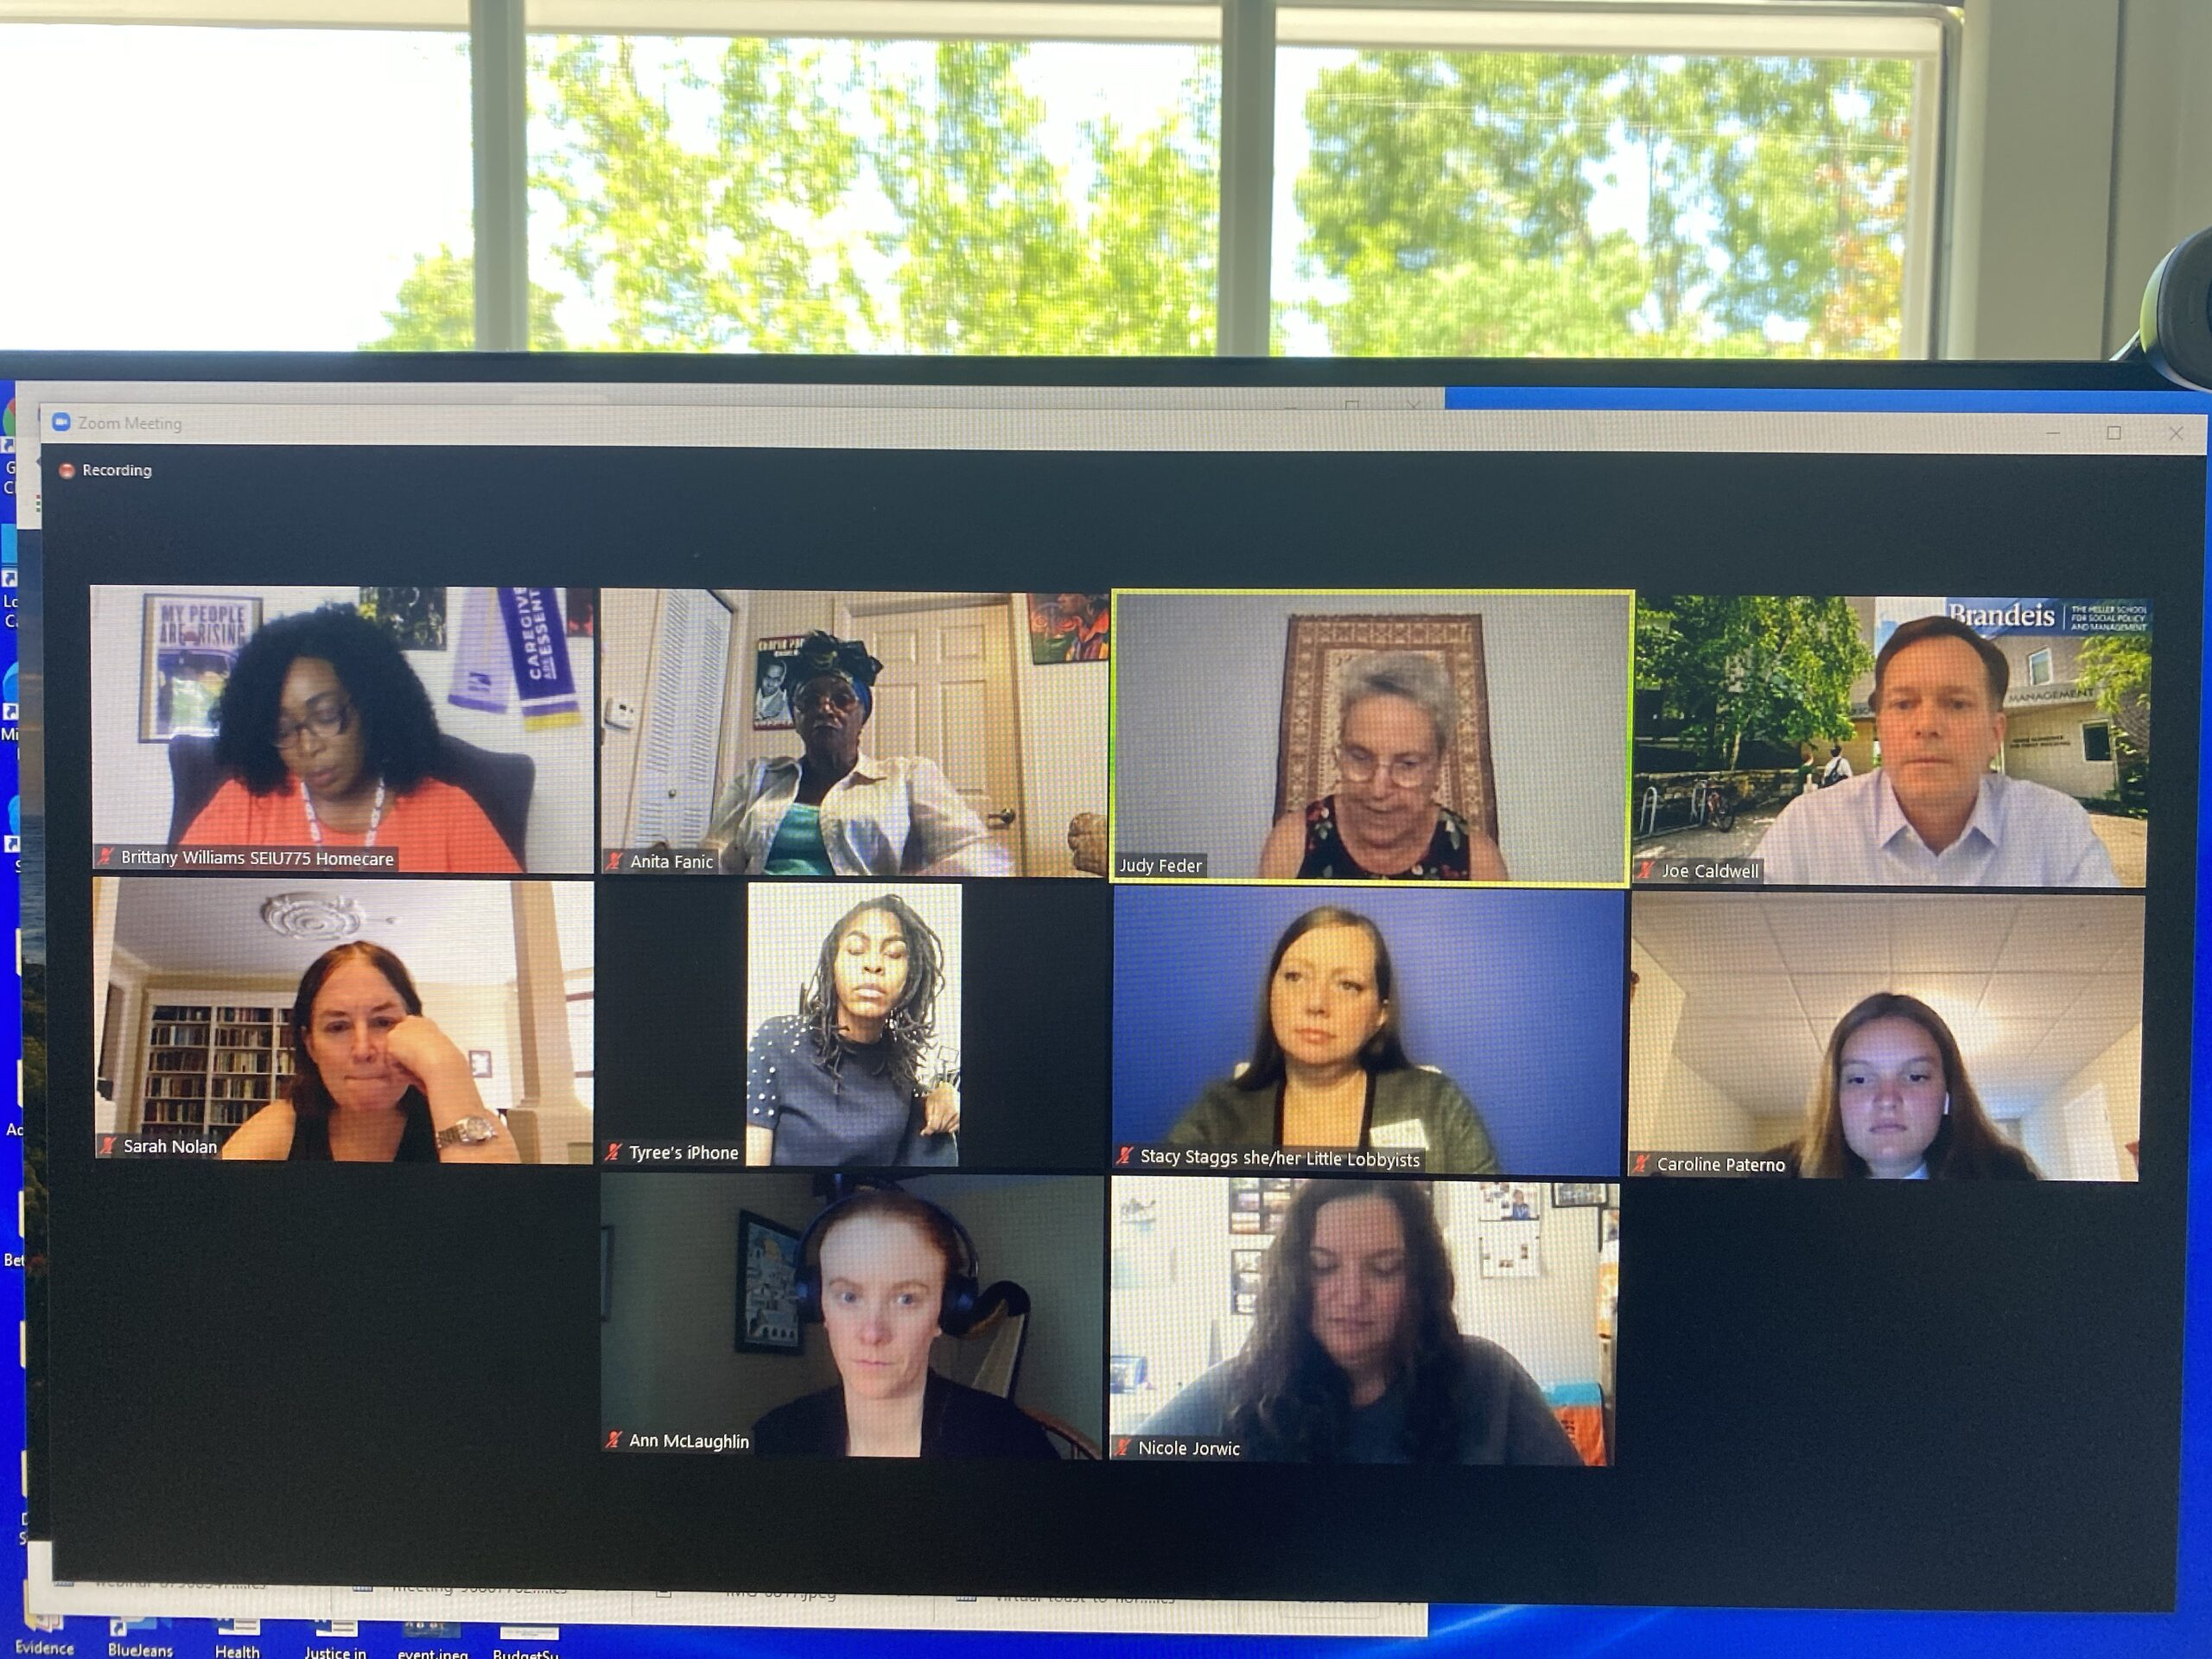 screen shot of a group of people testifying at a legislative briefing via zoom. There are 11 boxes with people in them